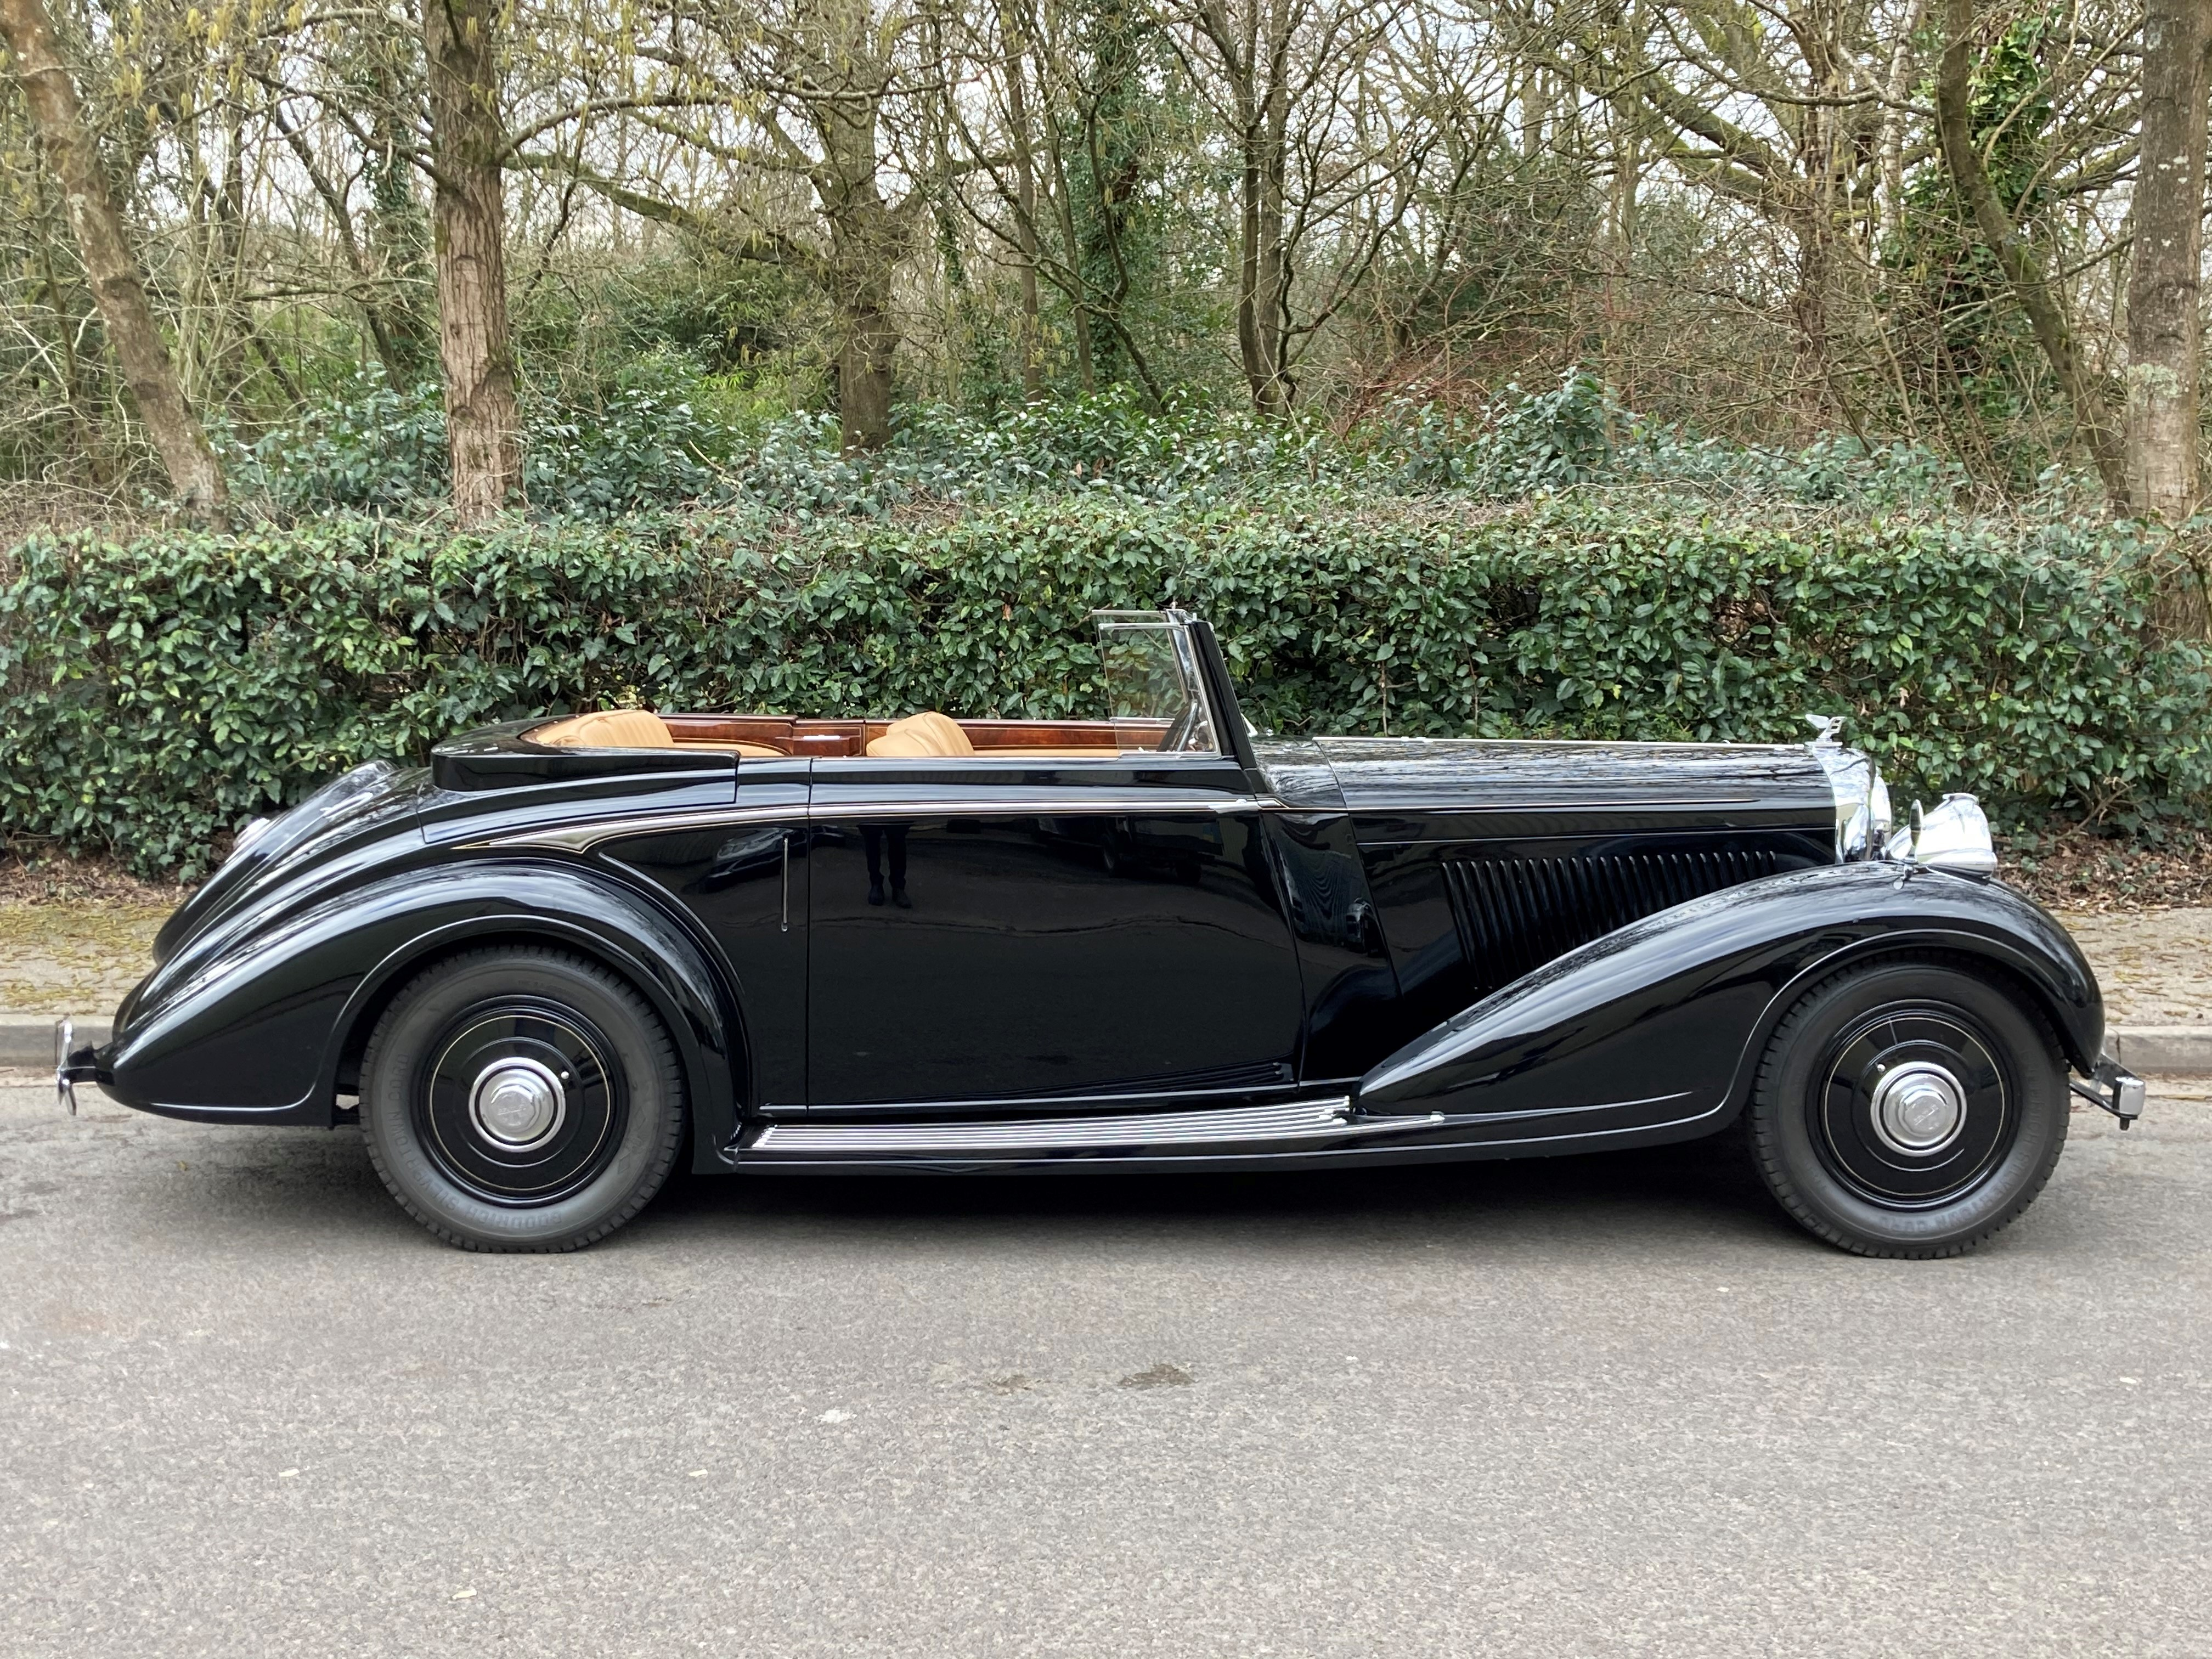 1938 Bentley 4 1/4 Litre Concealed Drophead Coupe by H.J.Mulliner